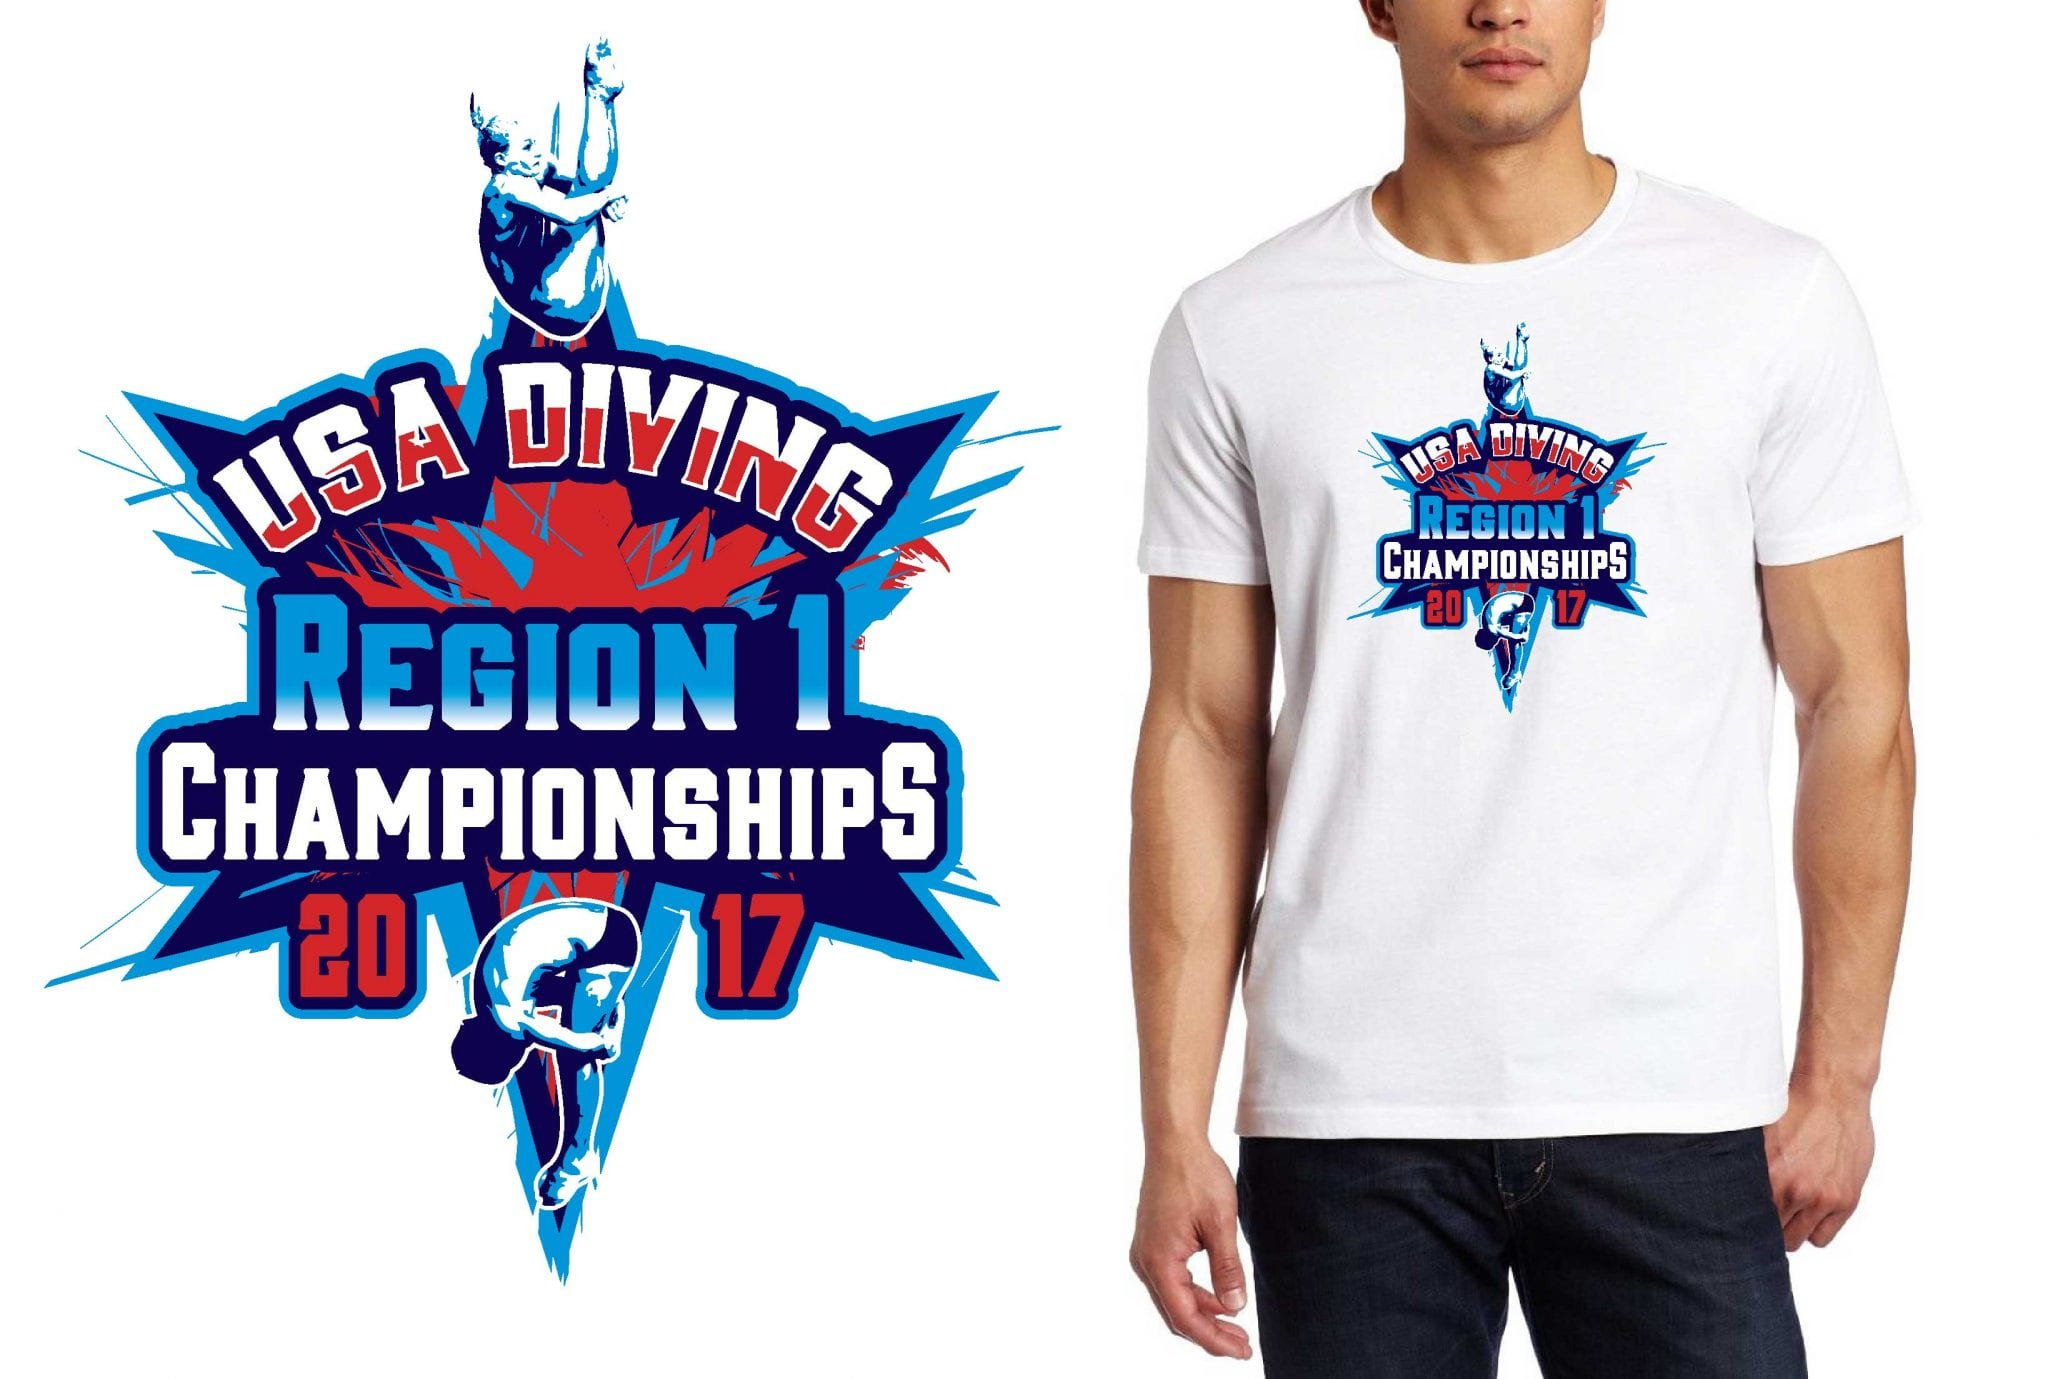 2017 USA Diving Region 1 Championships vector logo design for diving t-shirt UrArtStudio